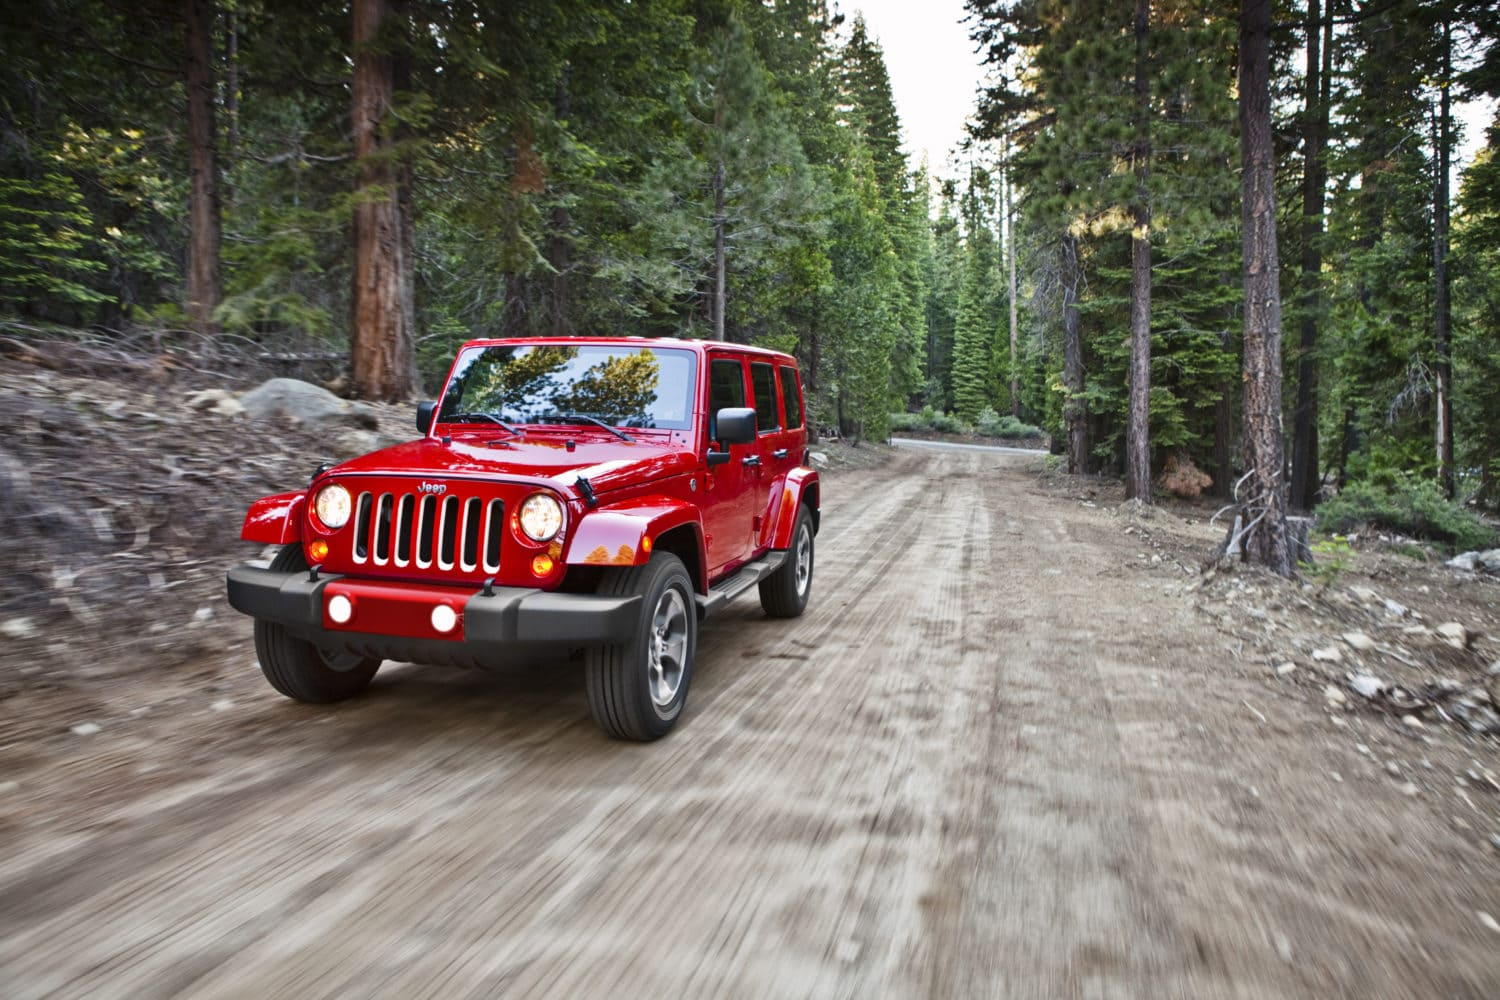 2017 Jeep® Wrangler Unlimited Sahara. The off-road champion remains so!